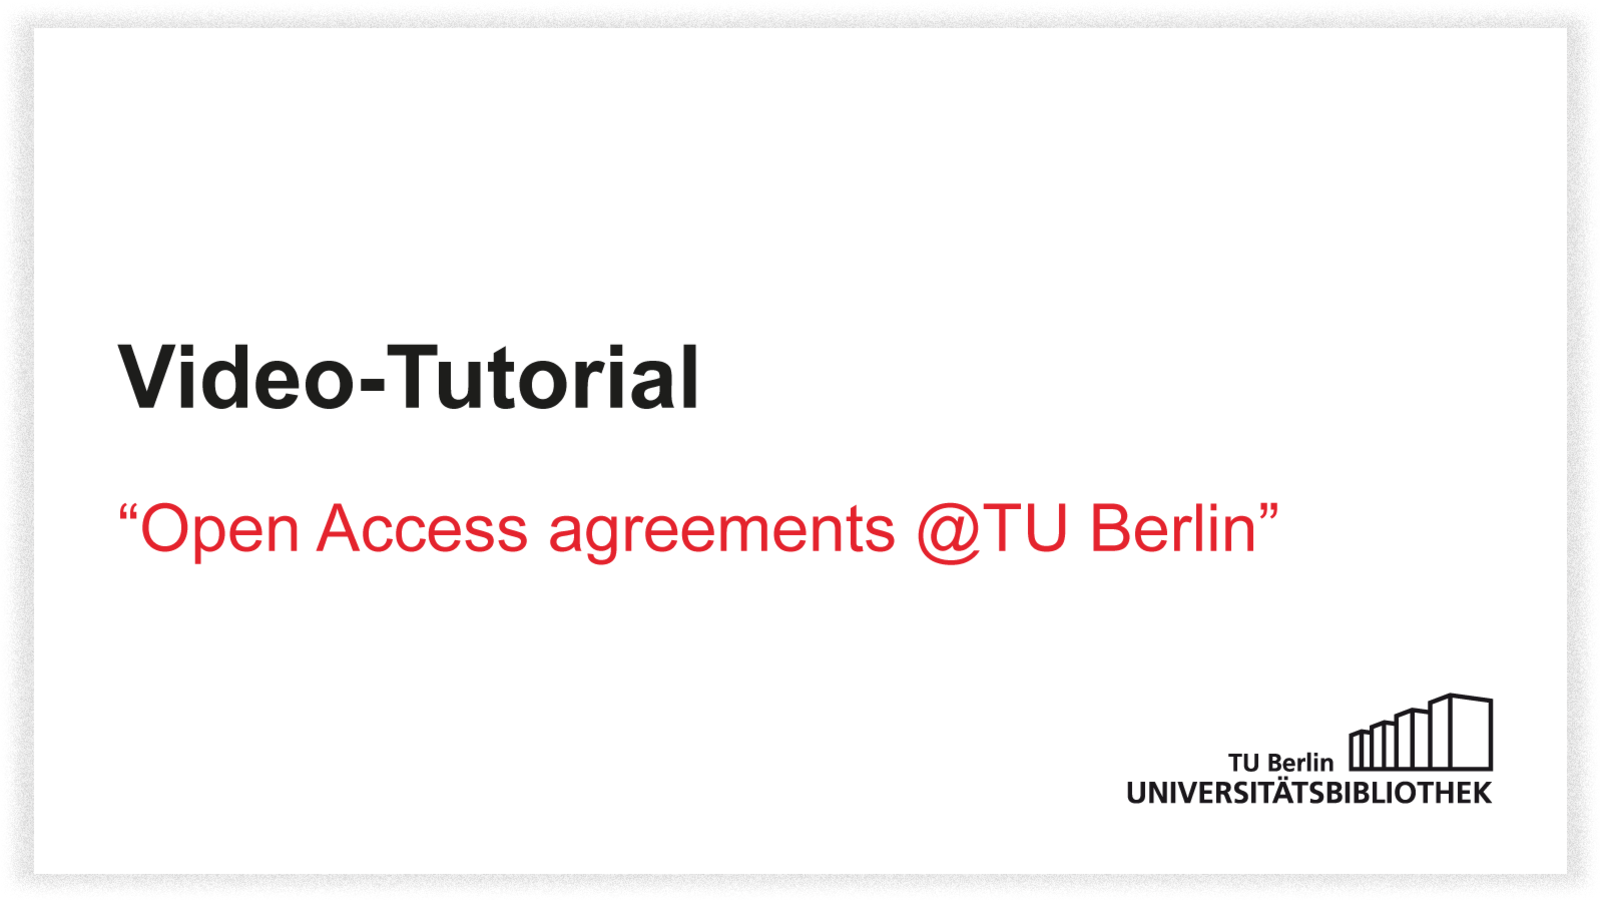 Video-Tutorial: Open Access agreements @ TU Berlin, englisch only